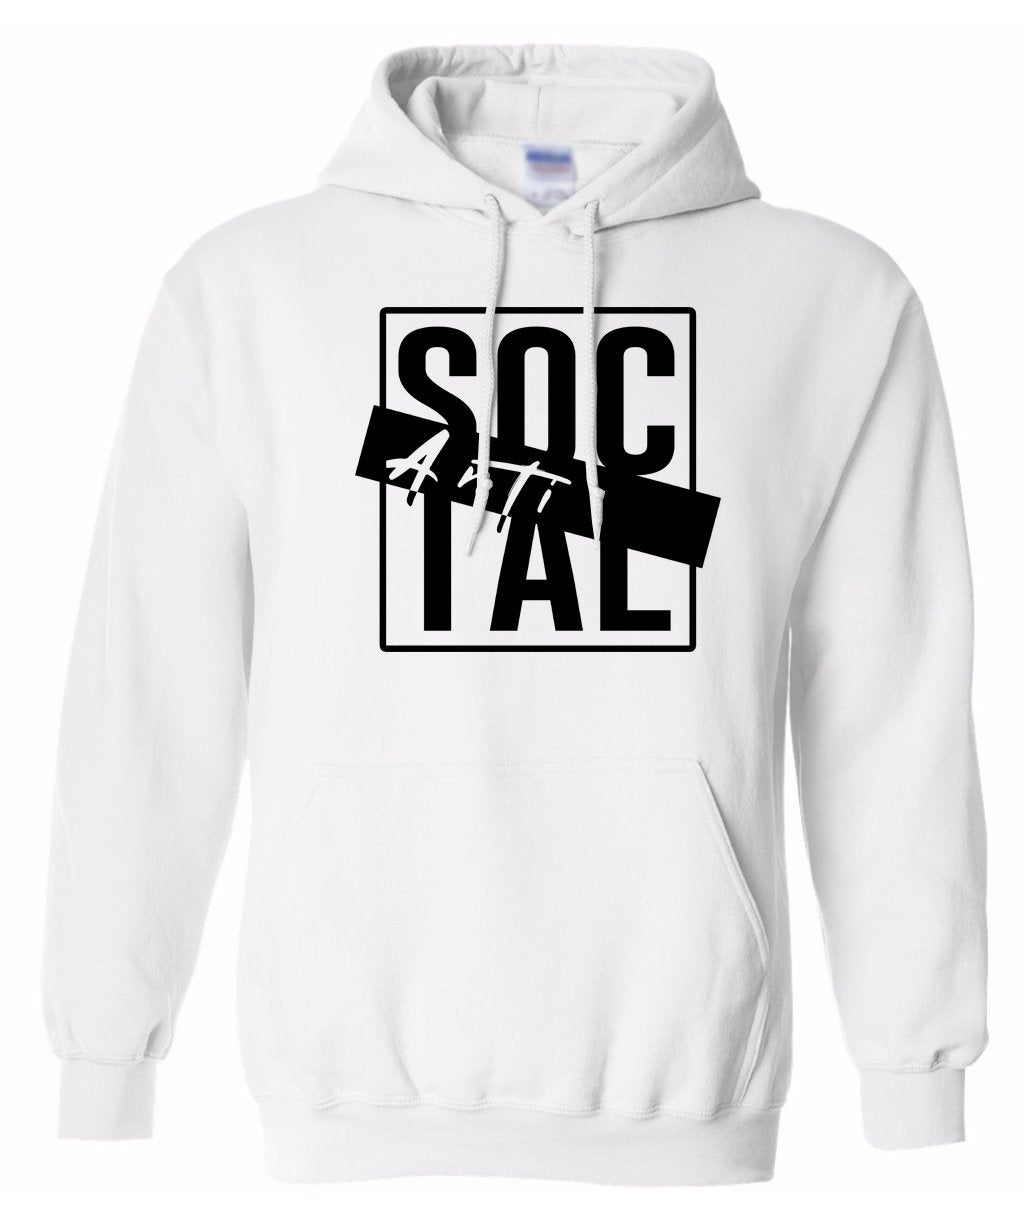 white antisocial pullover hoodie